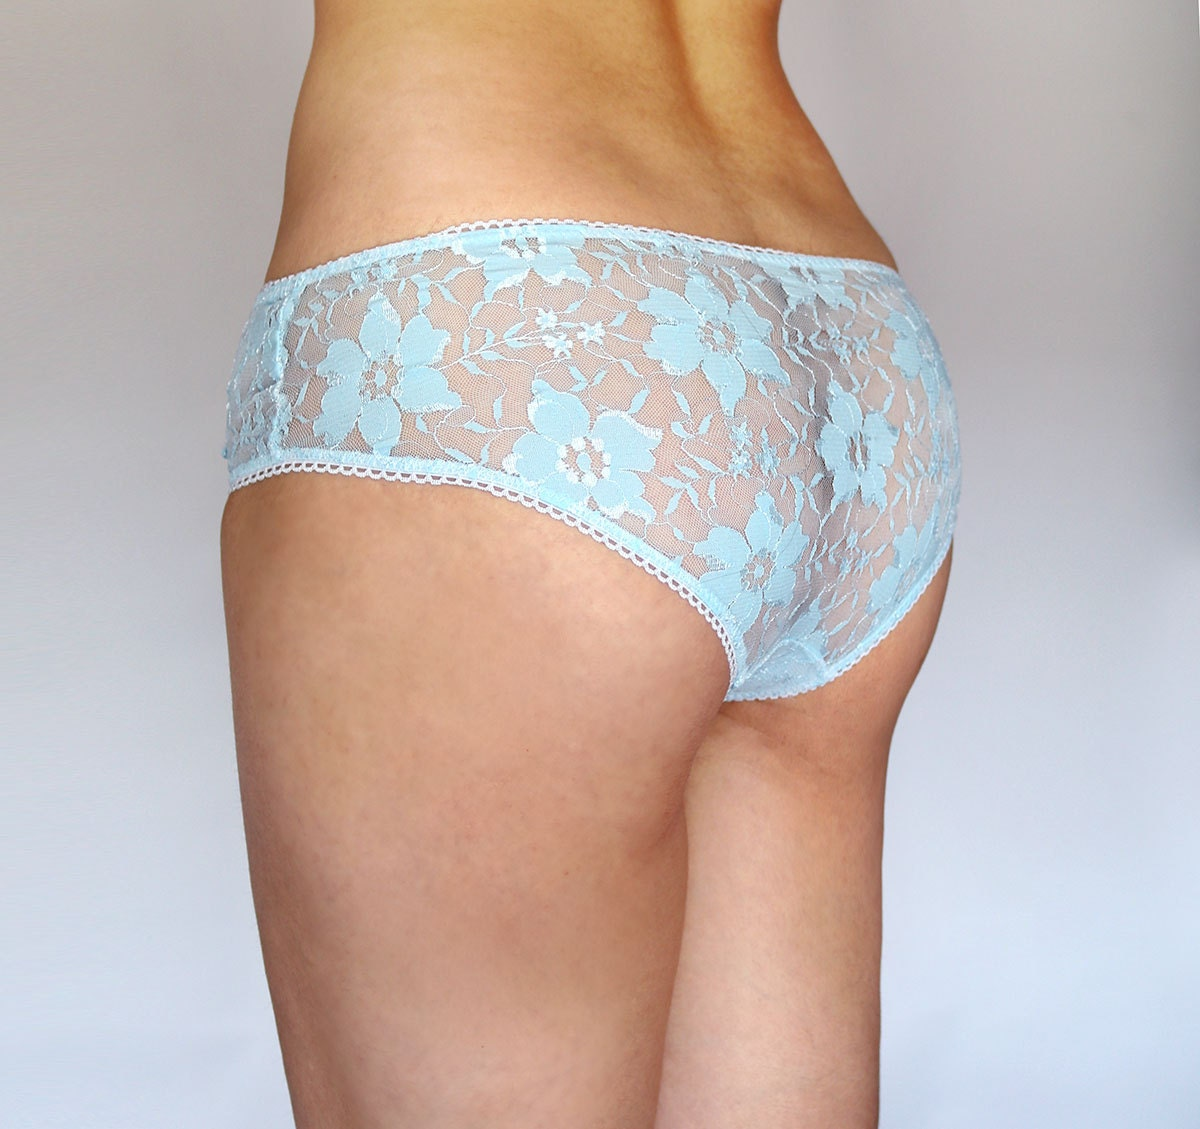 Find great deals on eBay for light blue lingerie. Shop with confidence.